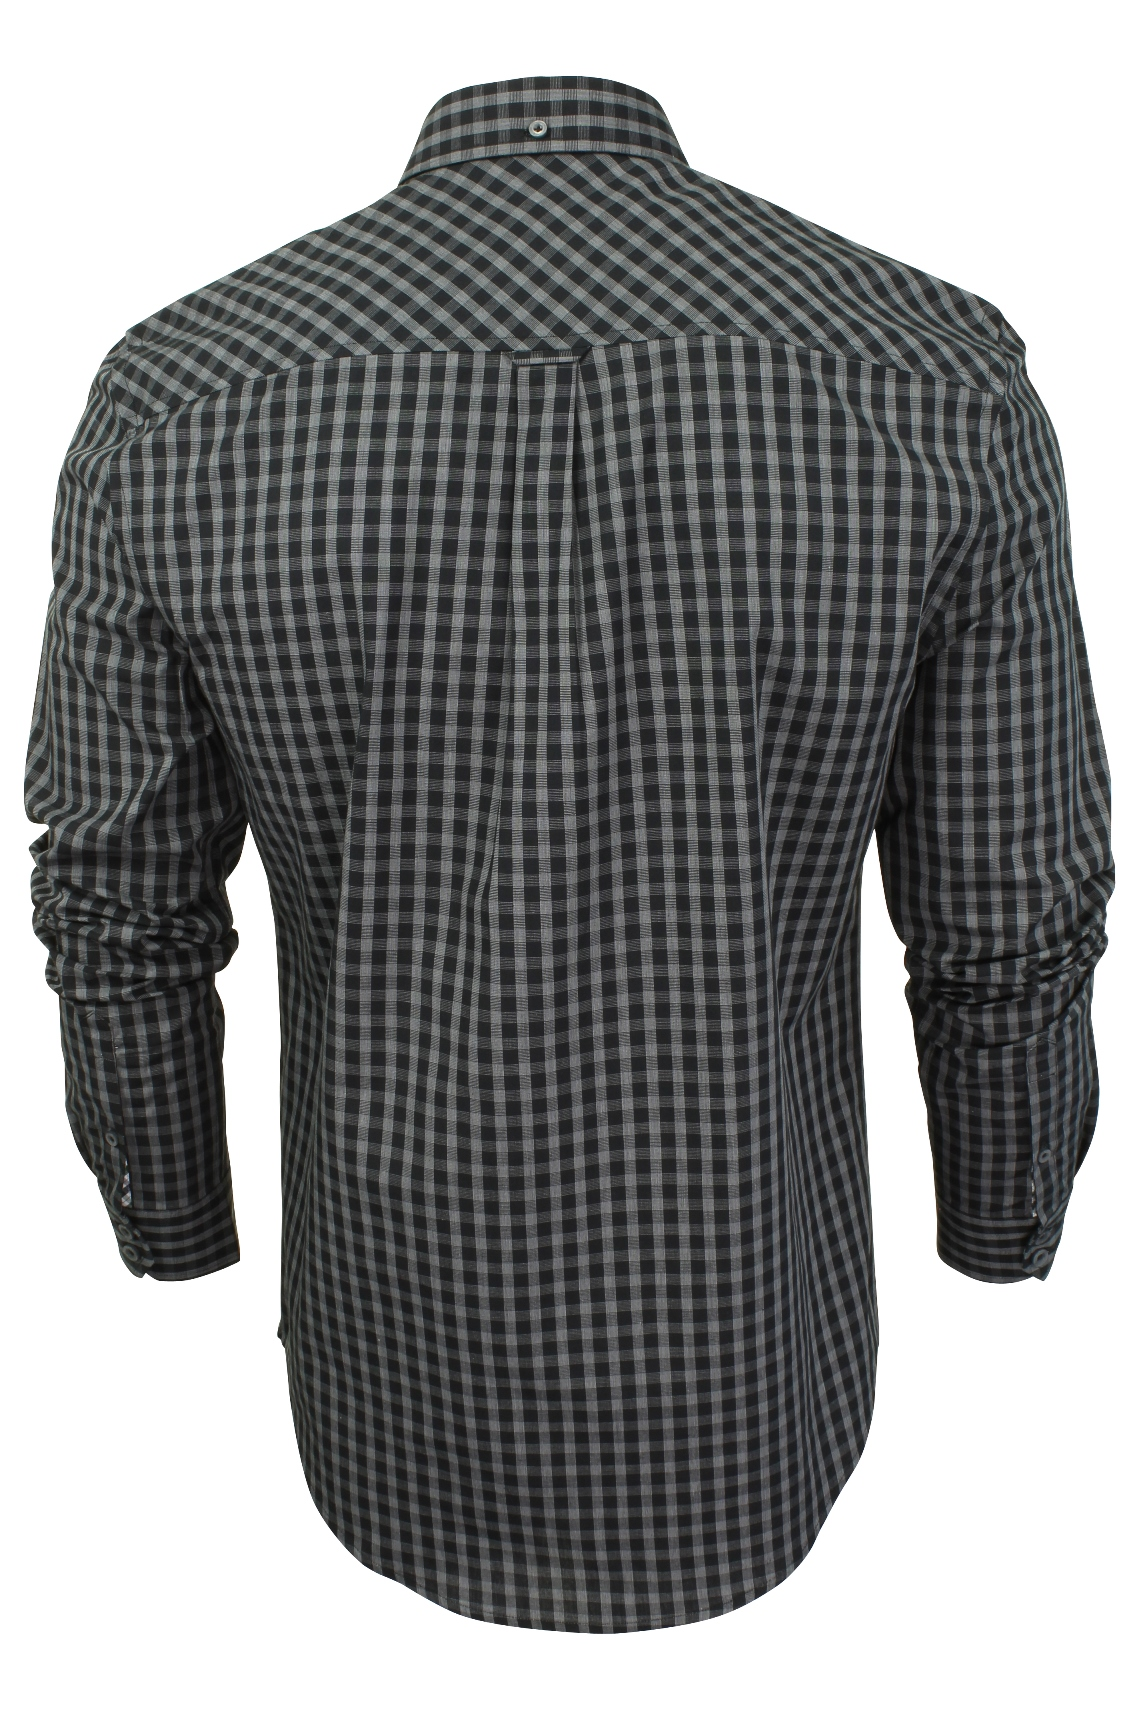 Mens-Windowpane-Check-Shirt-by-Ben-Sherman-Long-Sleeved thumbnail 8